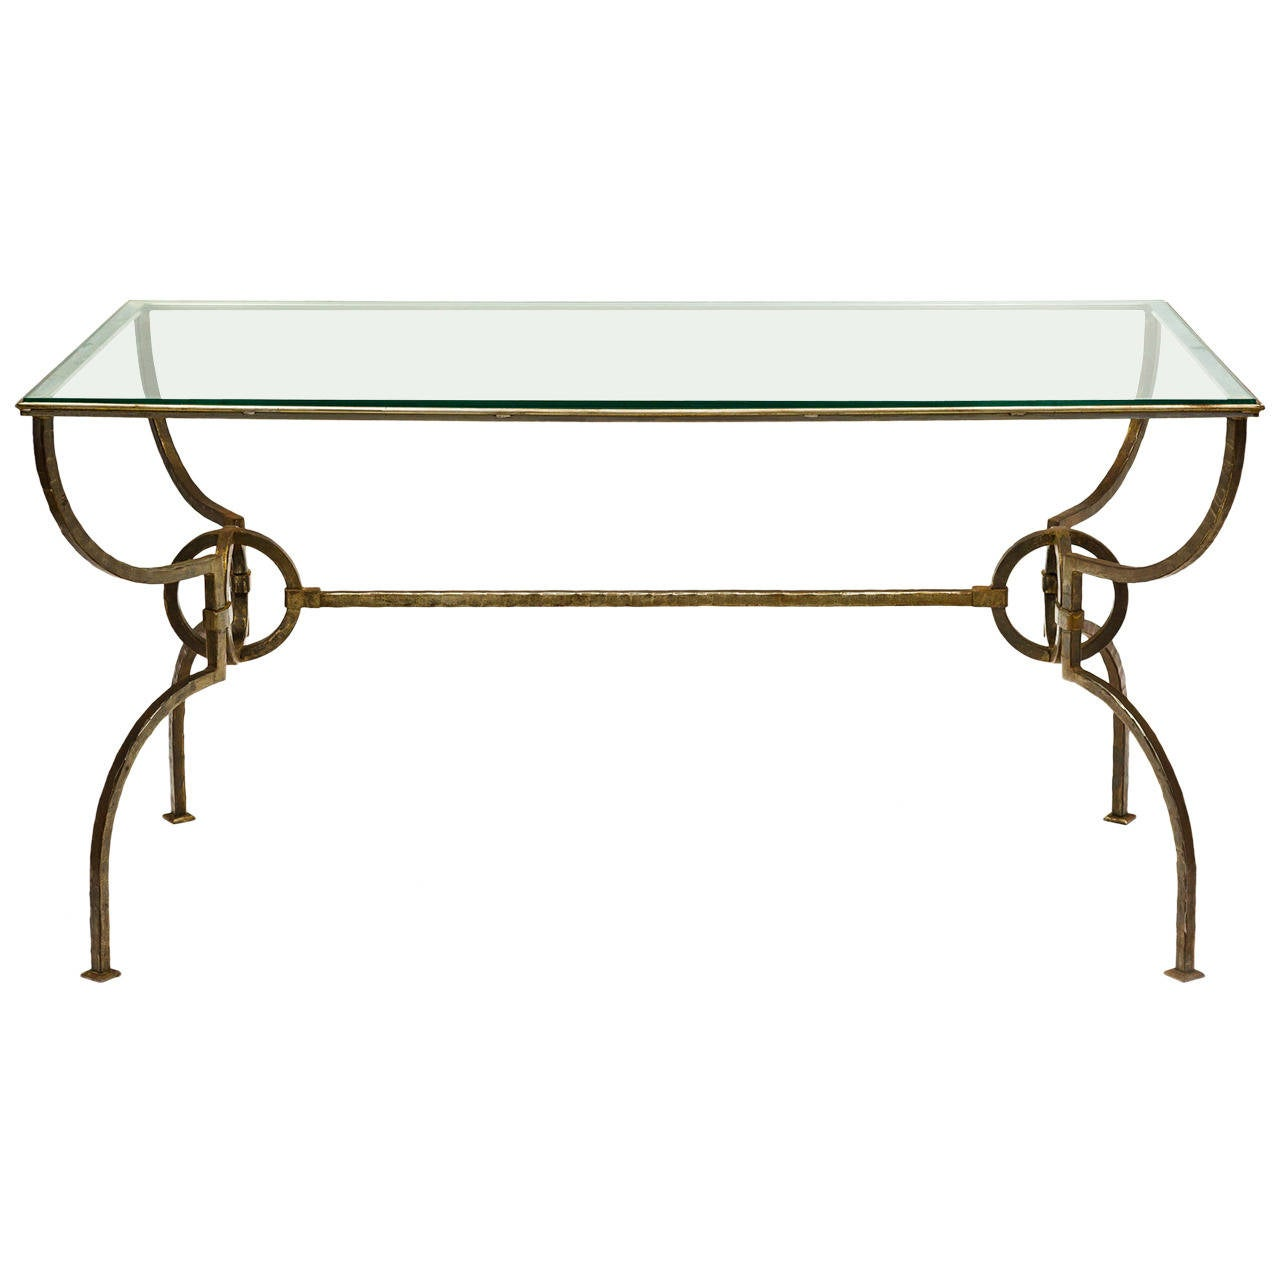 Wrought Iron Dining Center Table For Sale At 1stdibs